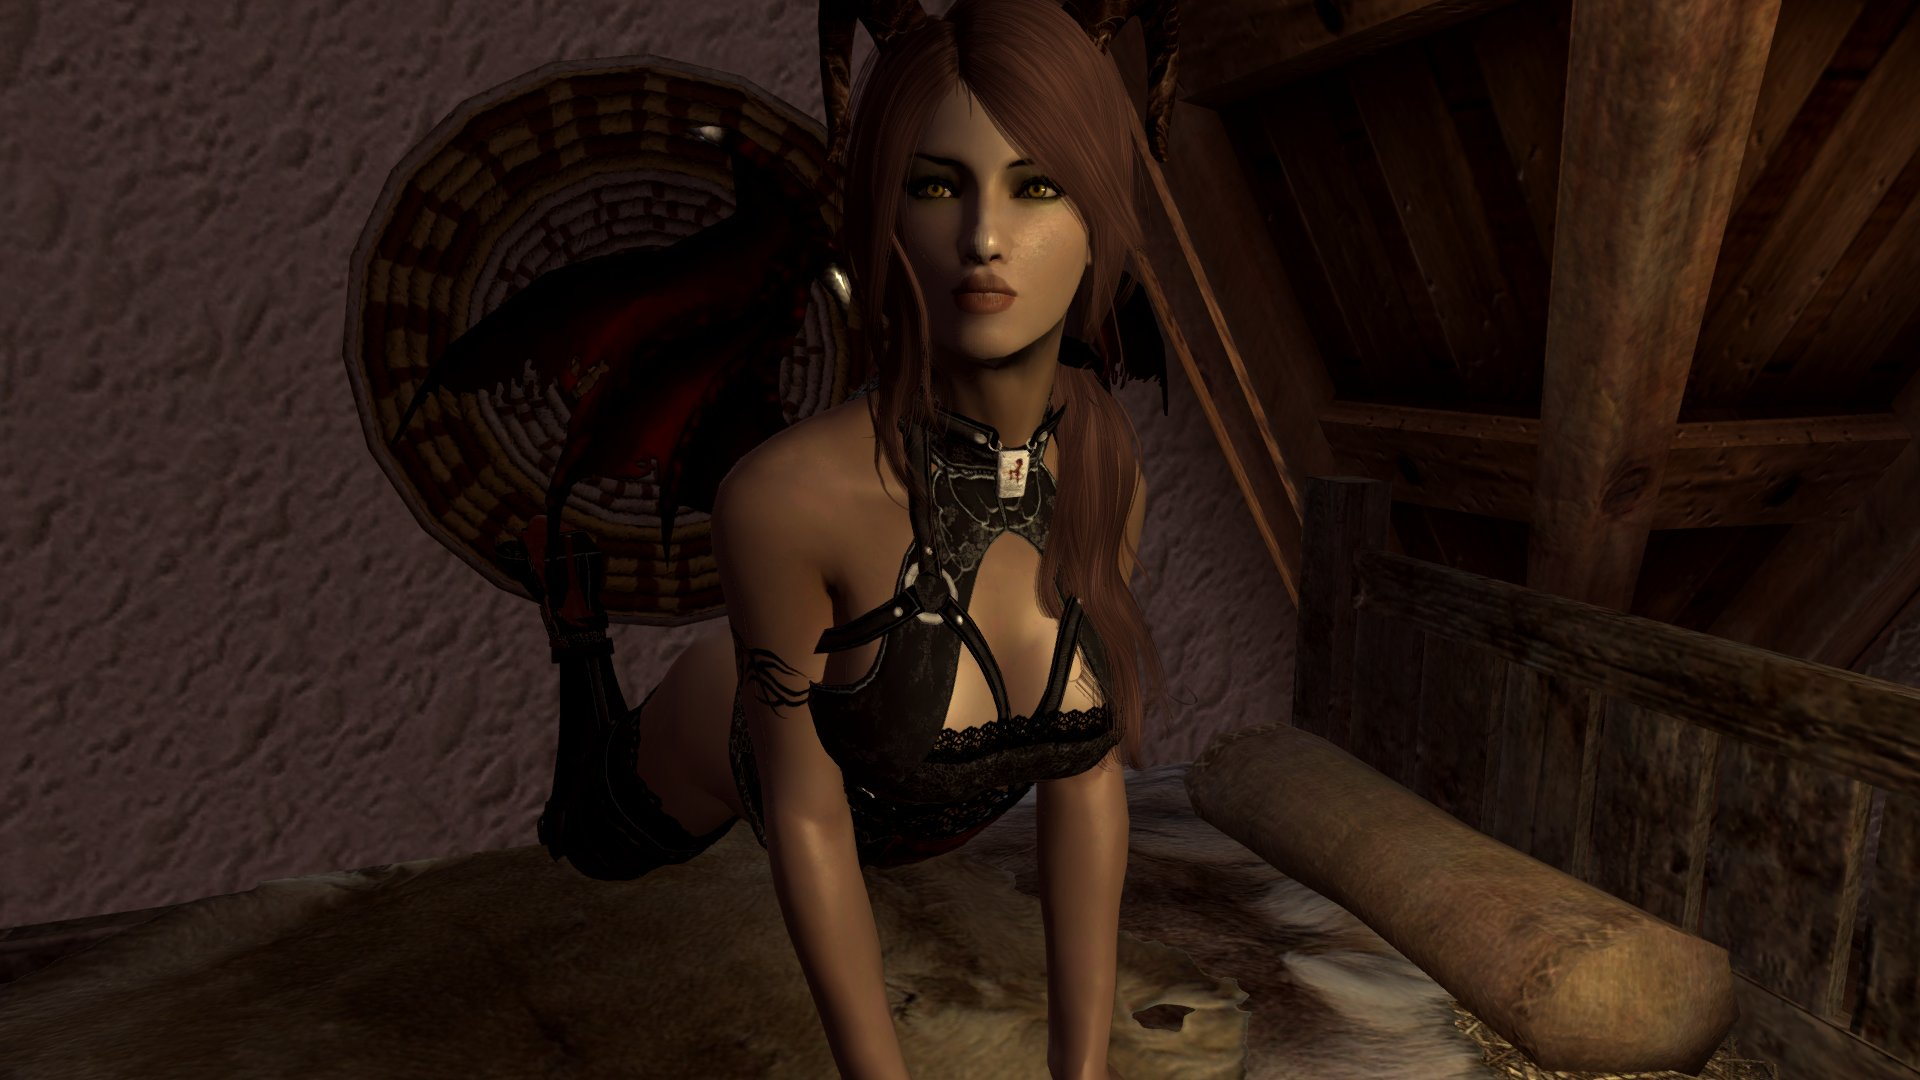 The elder scrolls succubus sex adult galleries